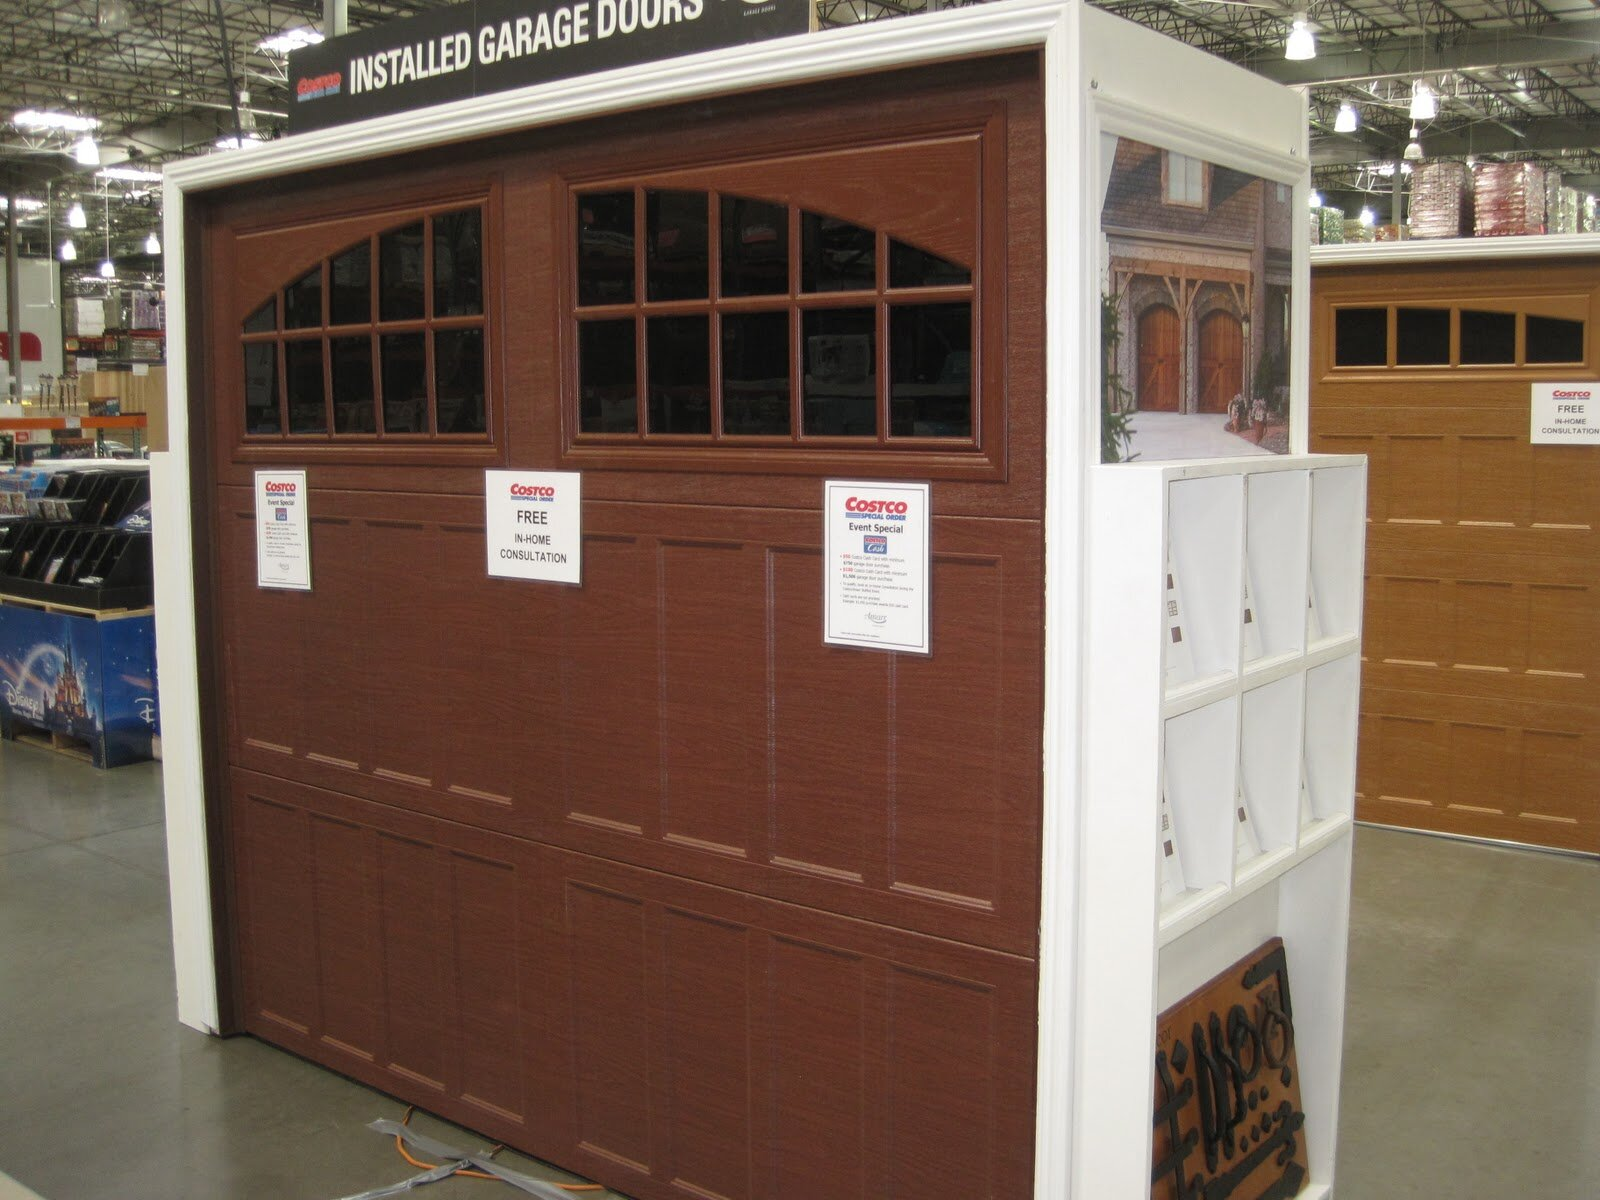 Cupboards for Garage Storage | Garage Cabinets Costco | Garage Workbench Costco